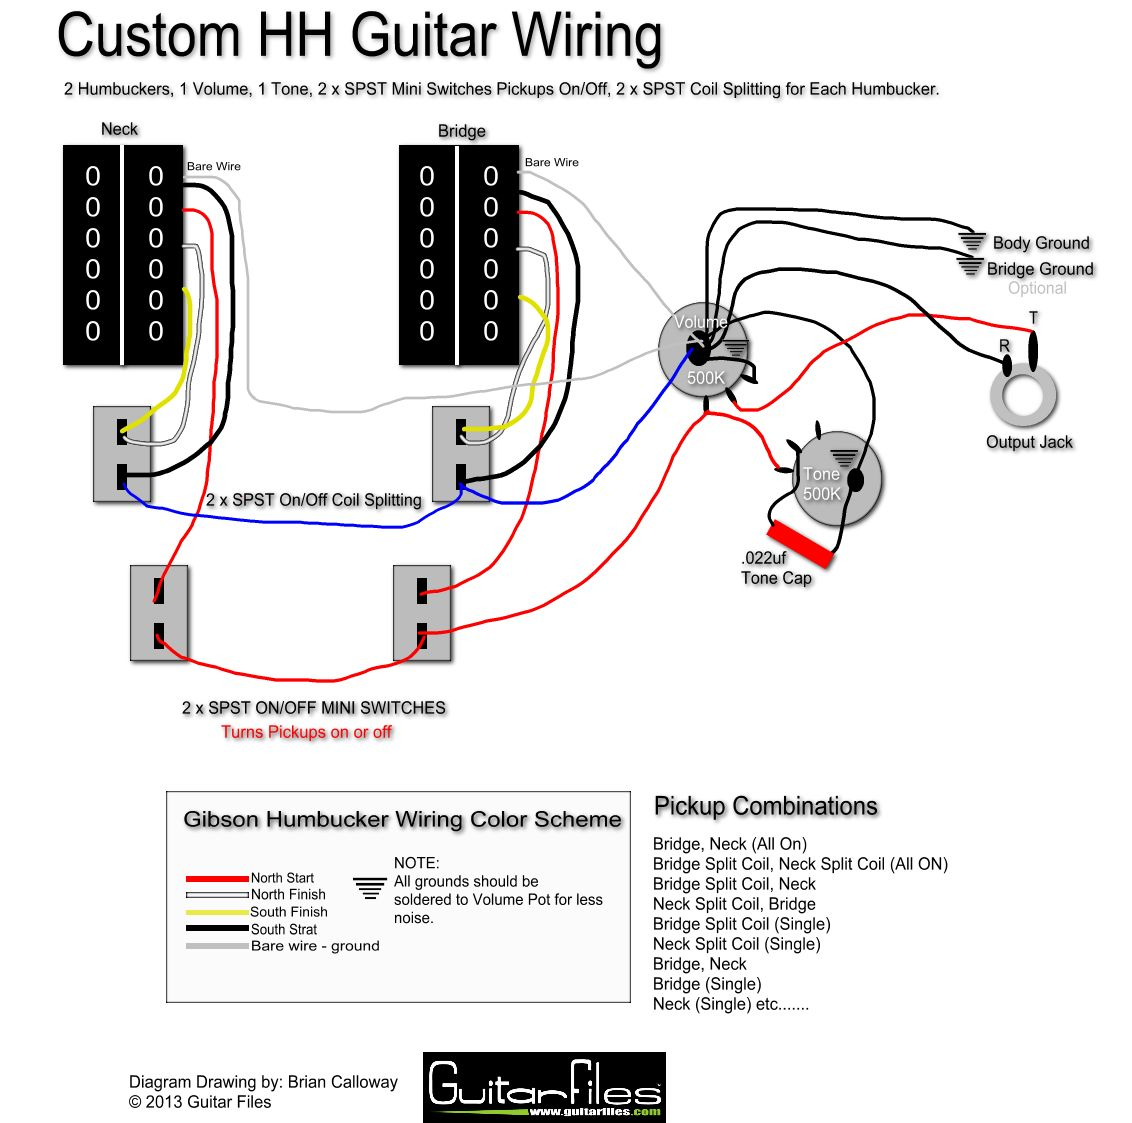 afe4f8370c0d308d426df63ec12f015c custom hh wiring diagram with spst coil splitting and spst humbucker coil split wiring diagram at eliteediting.co